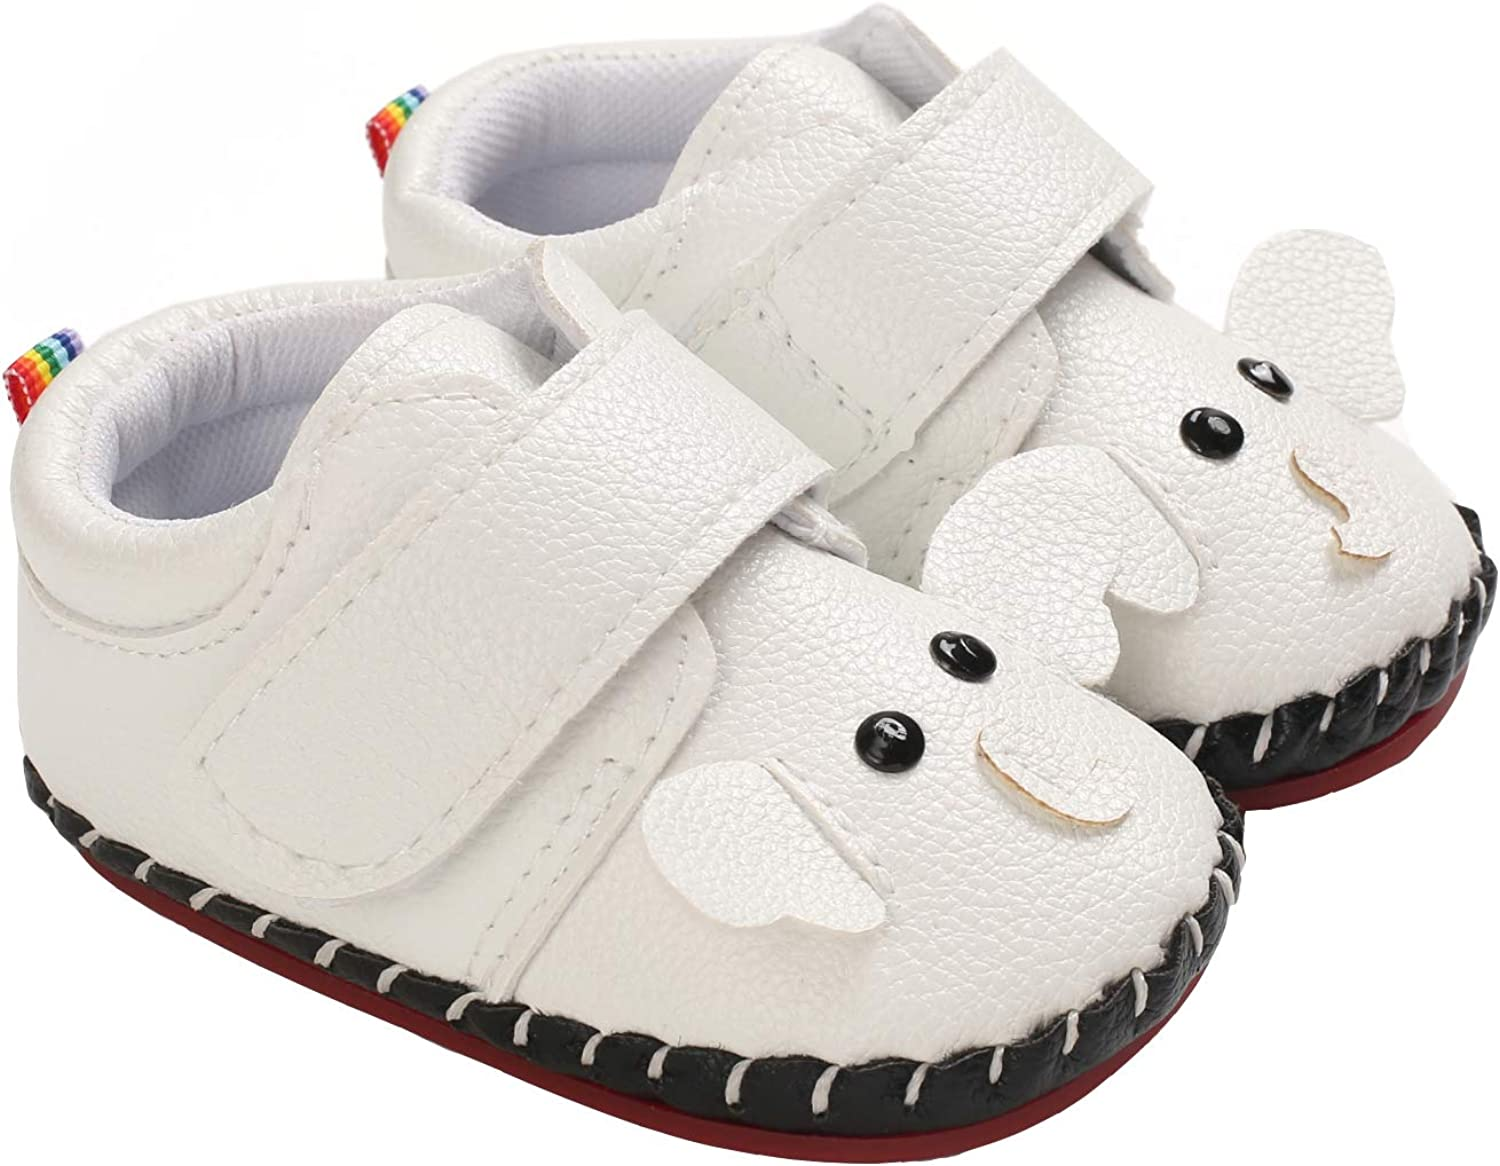 Roaays M Baby Shoes Toddler Boy Shoes